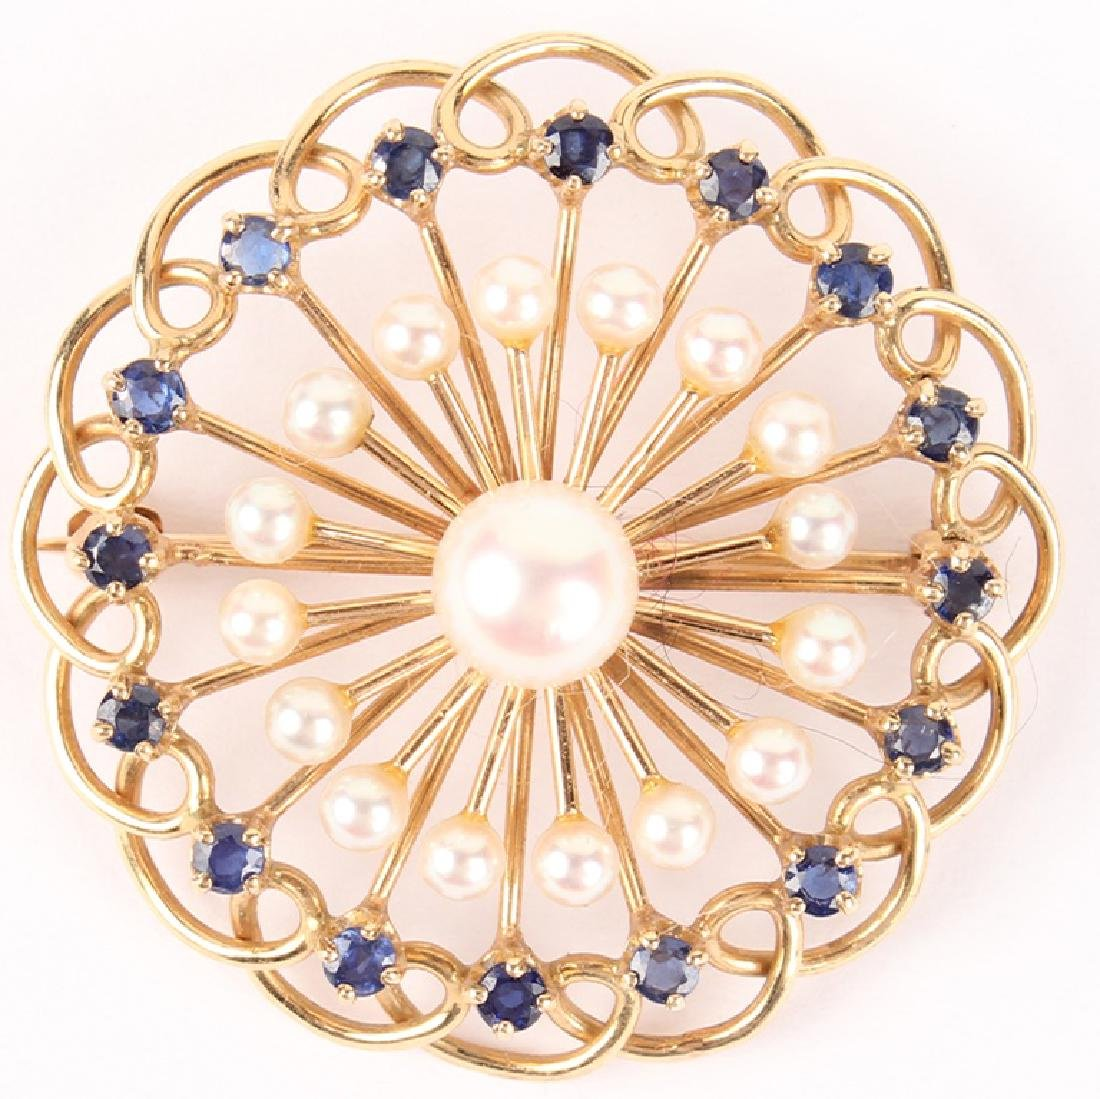 LADIES 14K YELLOW GOLD SAPPHIRE PEARL BROOCH